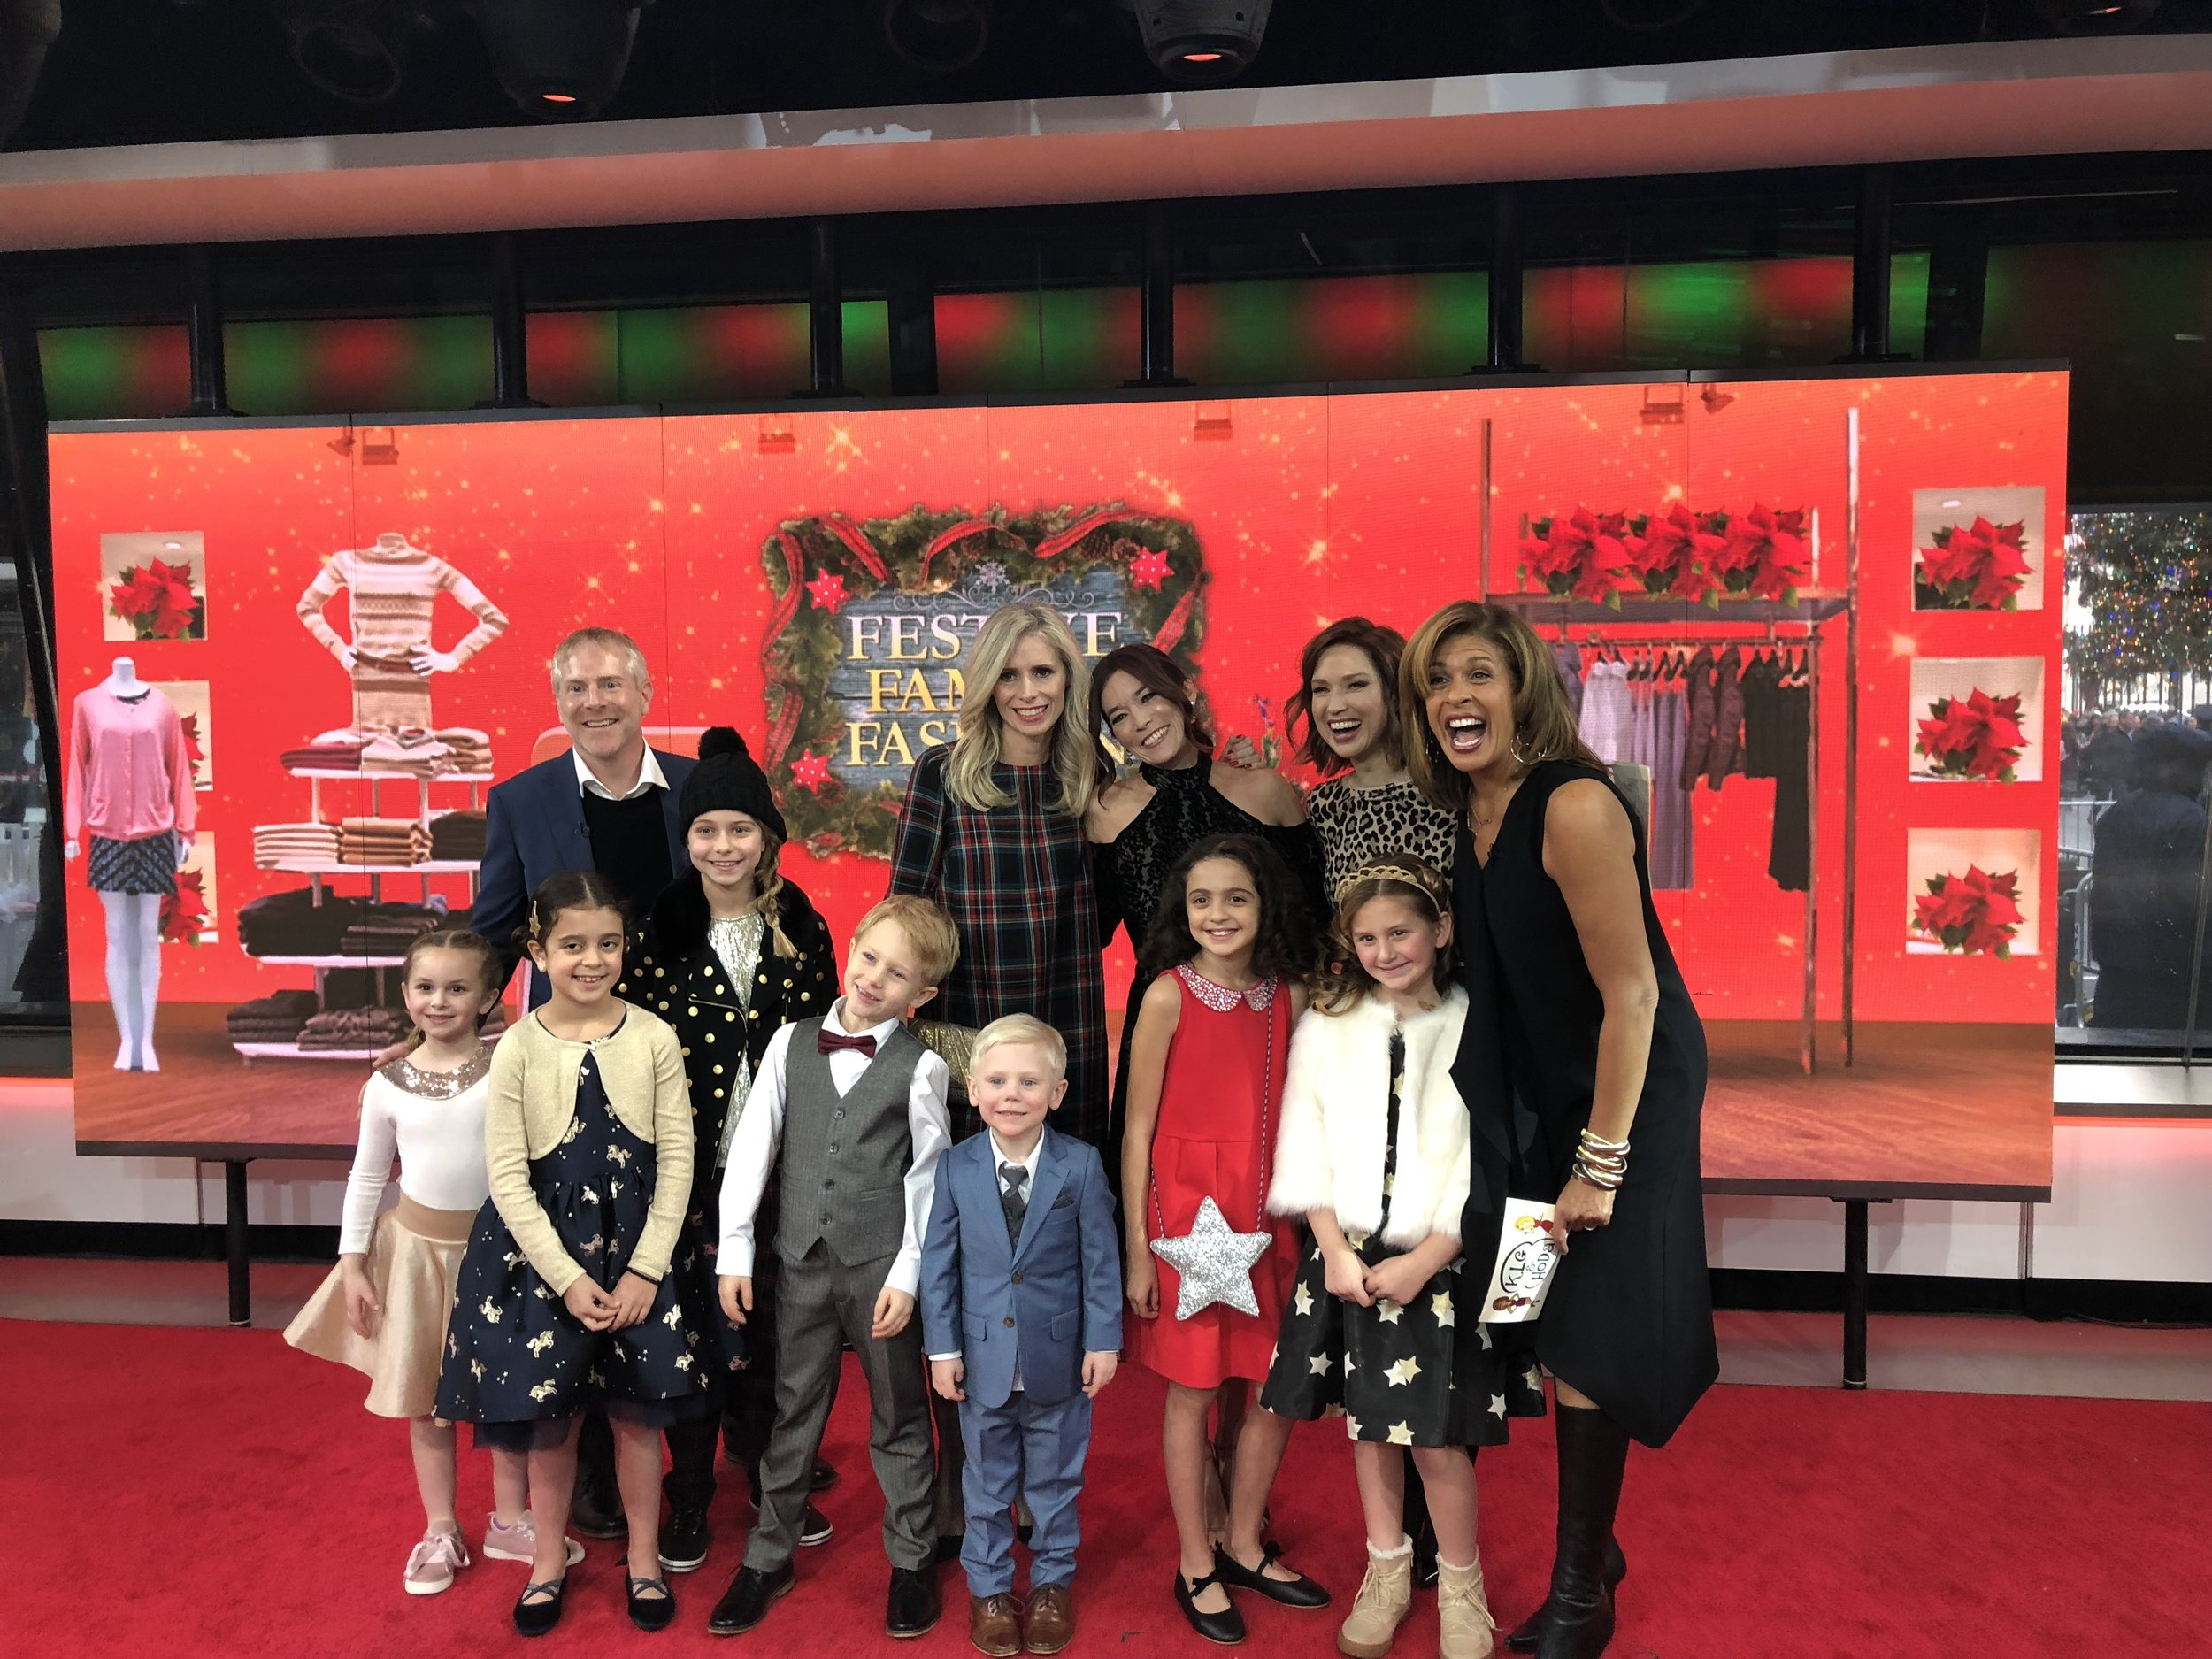 Say Reindeer! The entire model crew with guest co-host Ellie Kemper and co-host Hoda Kotb.